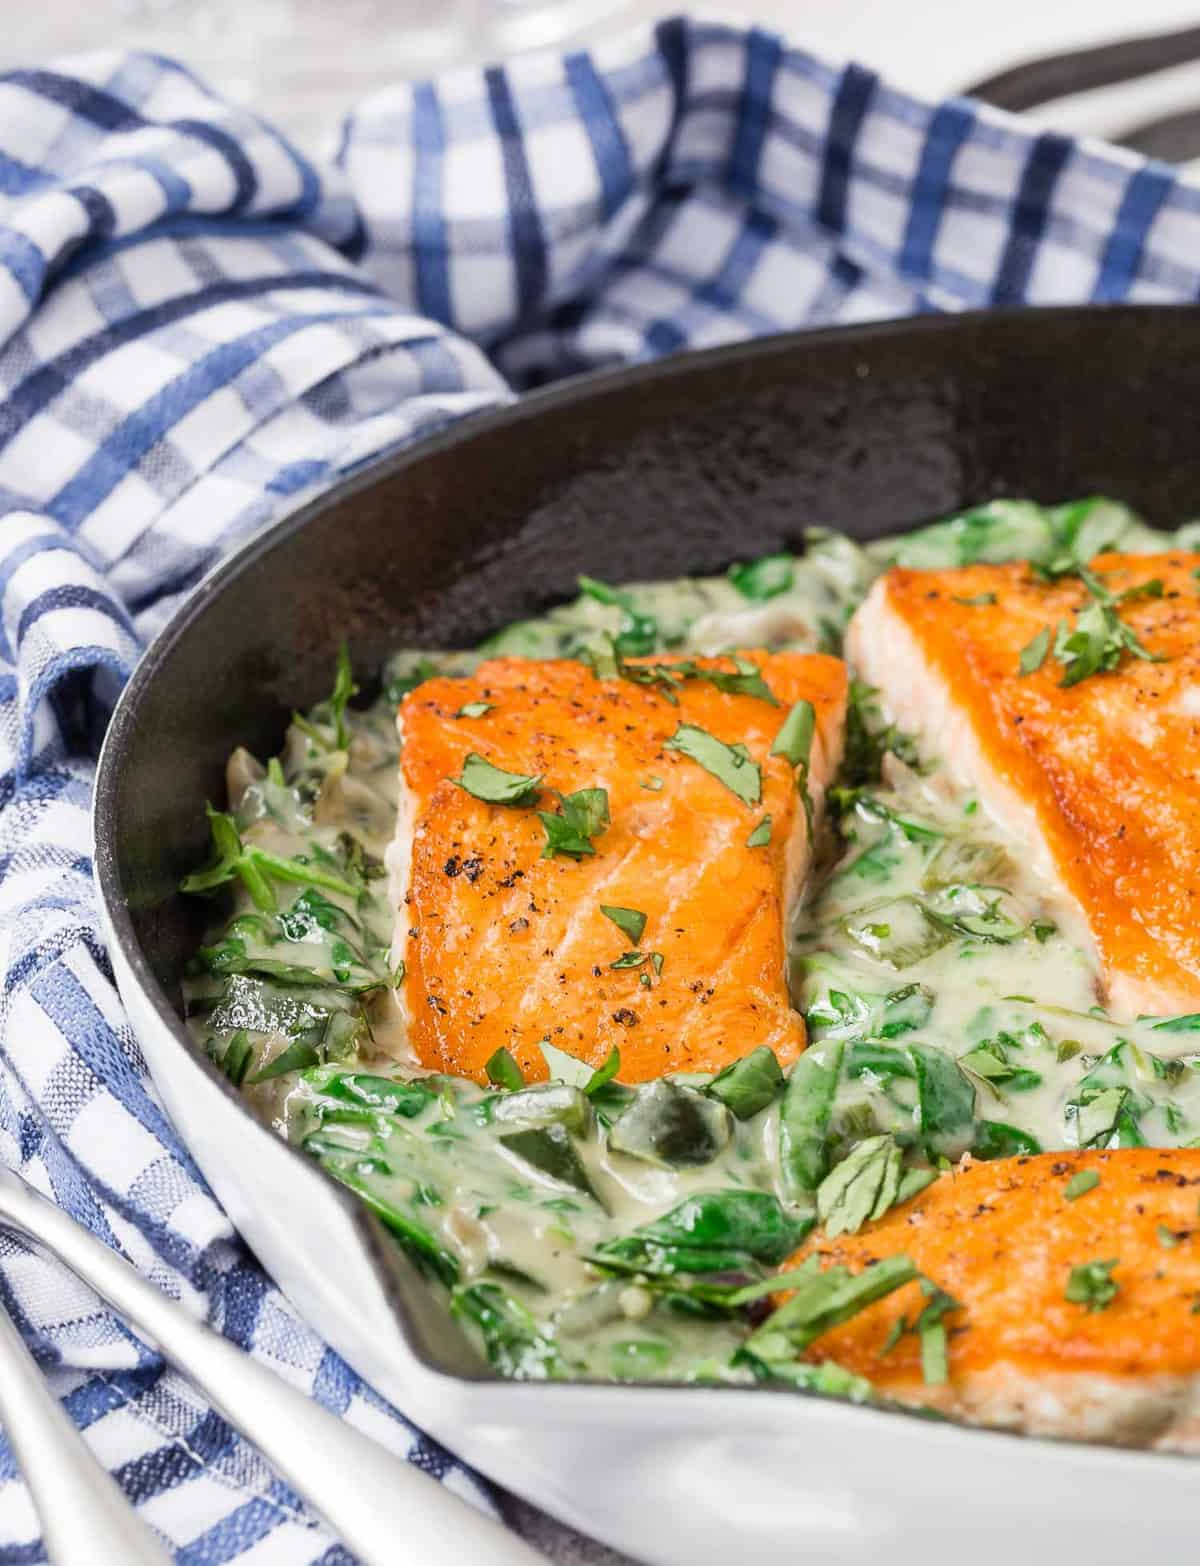 Salmon fillets nestled in a bed of creamy spinach sauce.